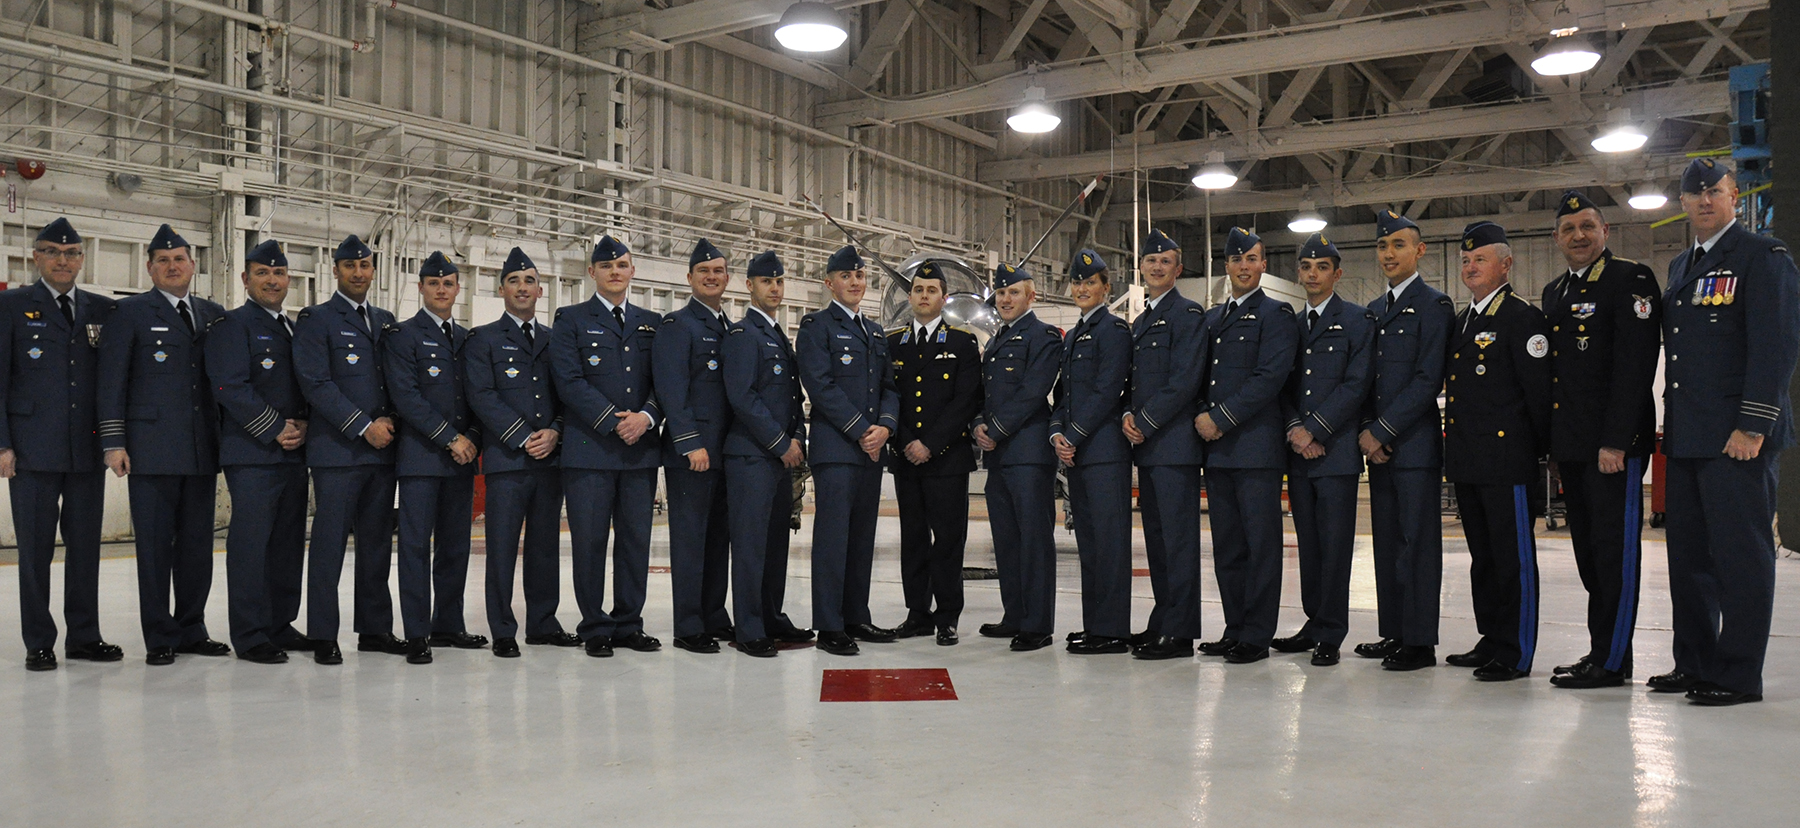 RCAF officers and officers of other Air Forces associated with the NATO Flying Training in Canada Program at 2 Canadian Forces Flying Training School, 15 Wing Moose Jaw, Saskatchewan, gather with the most recent graduates of the program. From left:  Master Warrant Officer Antone Collins, Colonel Dennis O'Reilly, Colonel William Radiff, Lieutenant Mena Ghabbour, Lieutenant Egon Urquhart-Gagne, Lieutenant Christopher Brown, Lieutenant Patryk Kitrys, Lieutenant Thomas Black, Lieutenant Danyk Barrette, Lieutenant Filip Konieczny, Second Lieutenant Mate Hernadi (HuAF), Lieutenant Baron Hordo, Lieutenant Kathryn Rowe, Lieutenant Olivier Demers, Lieutenant Benjamin Rouette, Lieutenant Jordon Gjelsvik, Lieutenant Andre Bui, Brigadier General Albert Safar (HuAF), Brigadier General Csaba Ugrik (HuAF), and Lieutenant-Colonel David Smith. PHOTO: DND